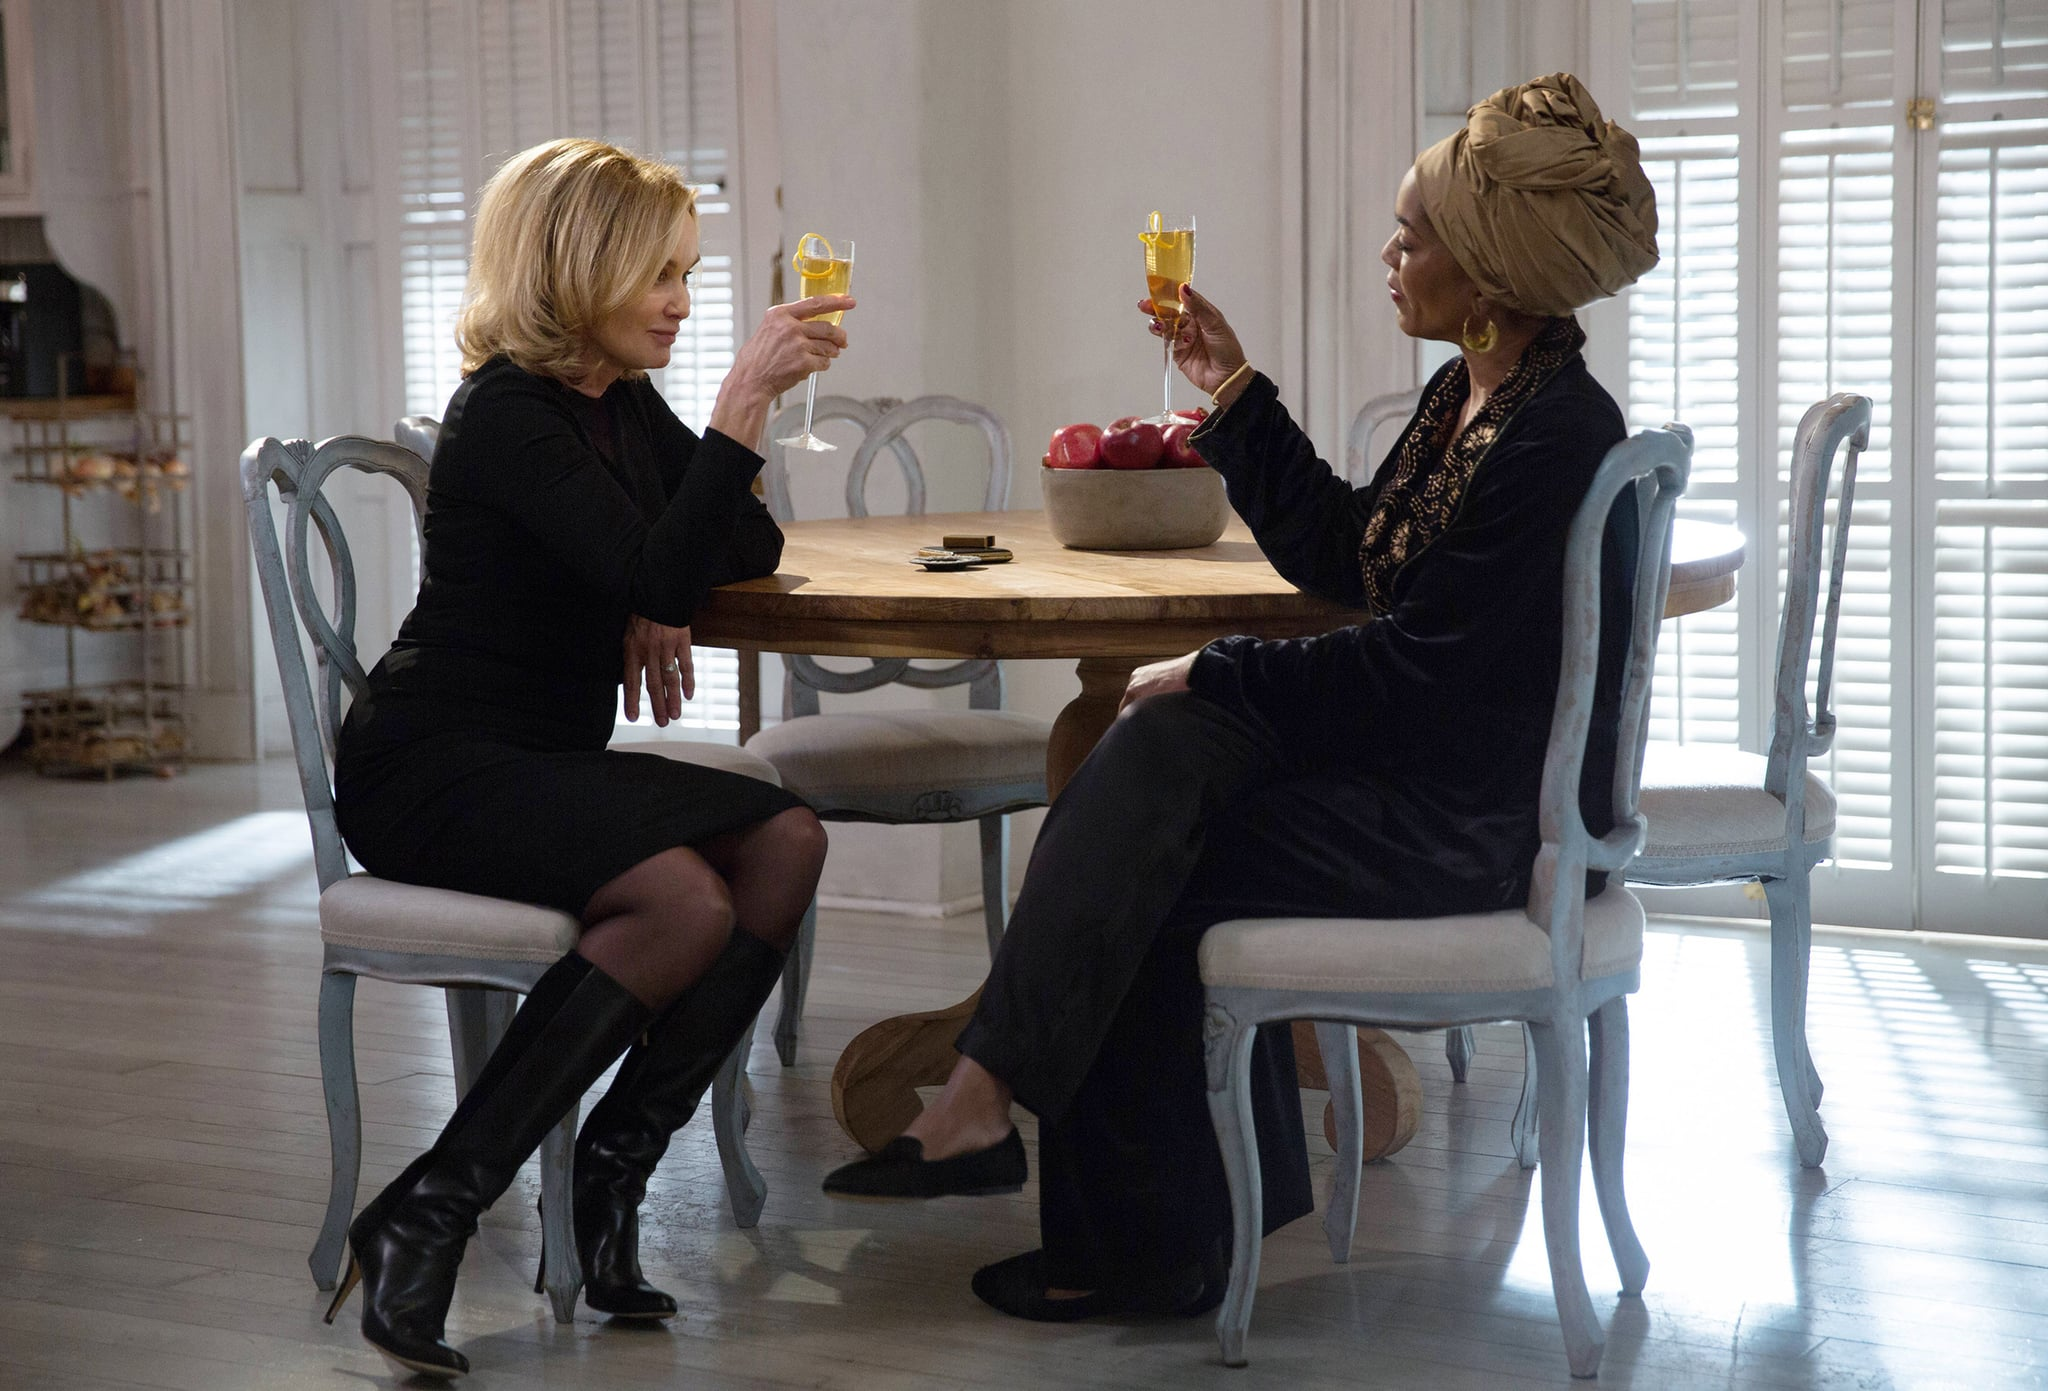 AMERICAN HORROR STORY: COVEN, l-r: Jessica Lange, Angela Bassett in 'Protect The Coven' (Season 3, Episode 11, aired January 15, 2014). ph: Michele K. Short/FX/courtesy Everett Collection